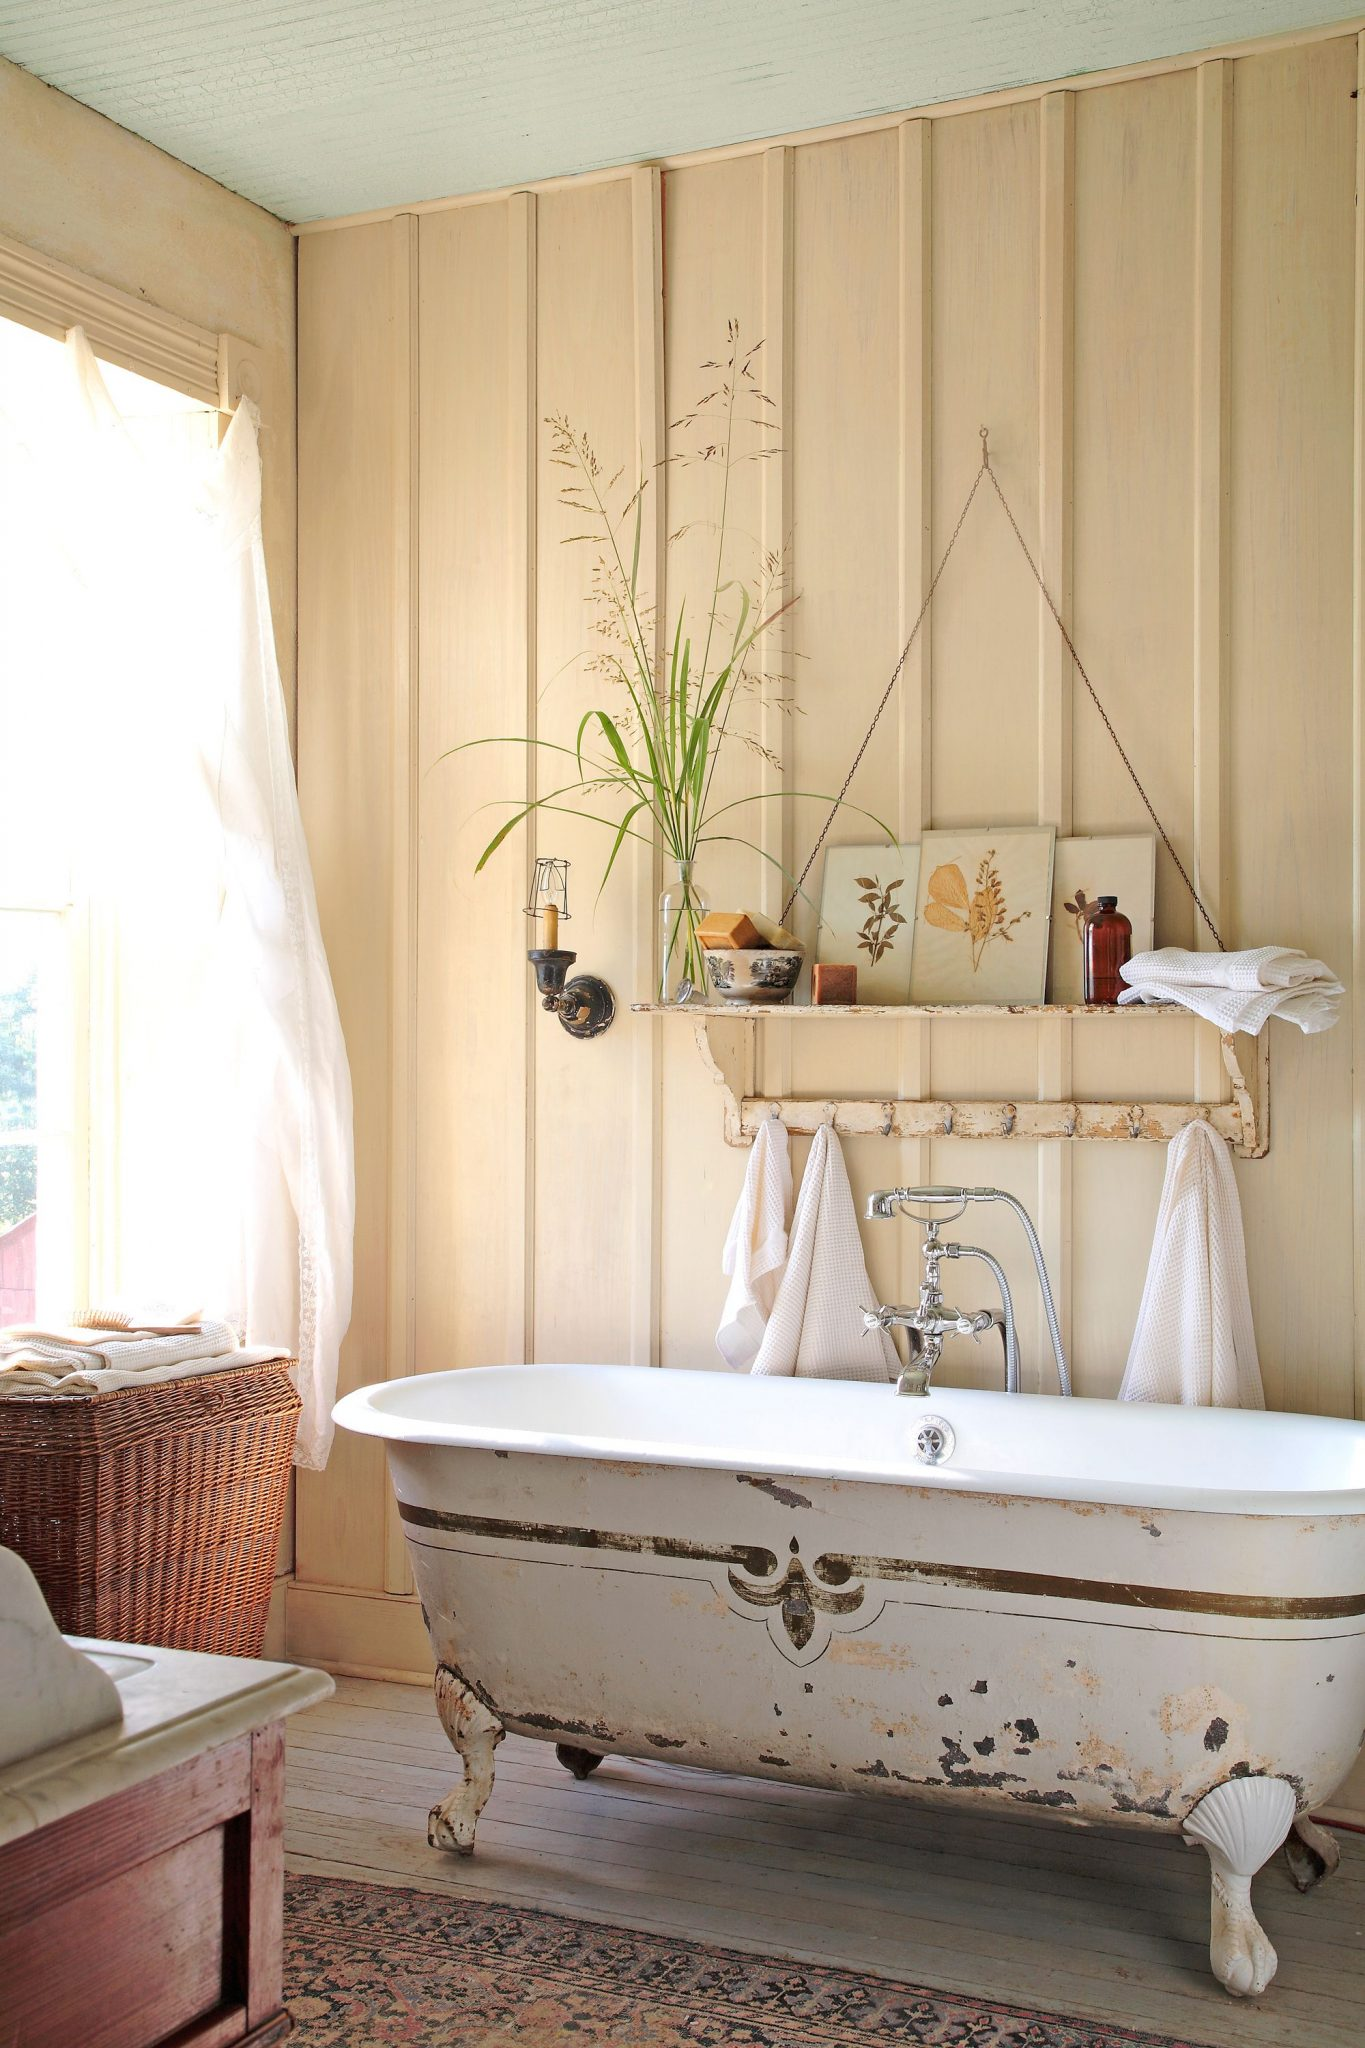 rustic bathroom ideas for a warm and relaxing private space - houseminds